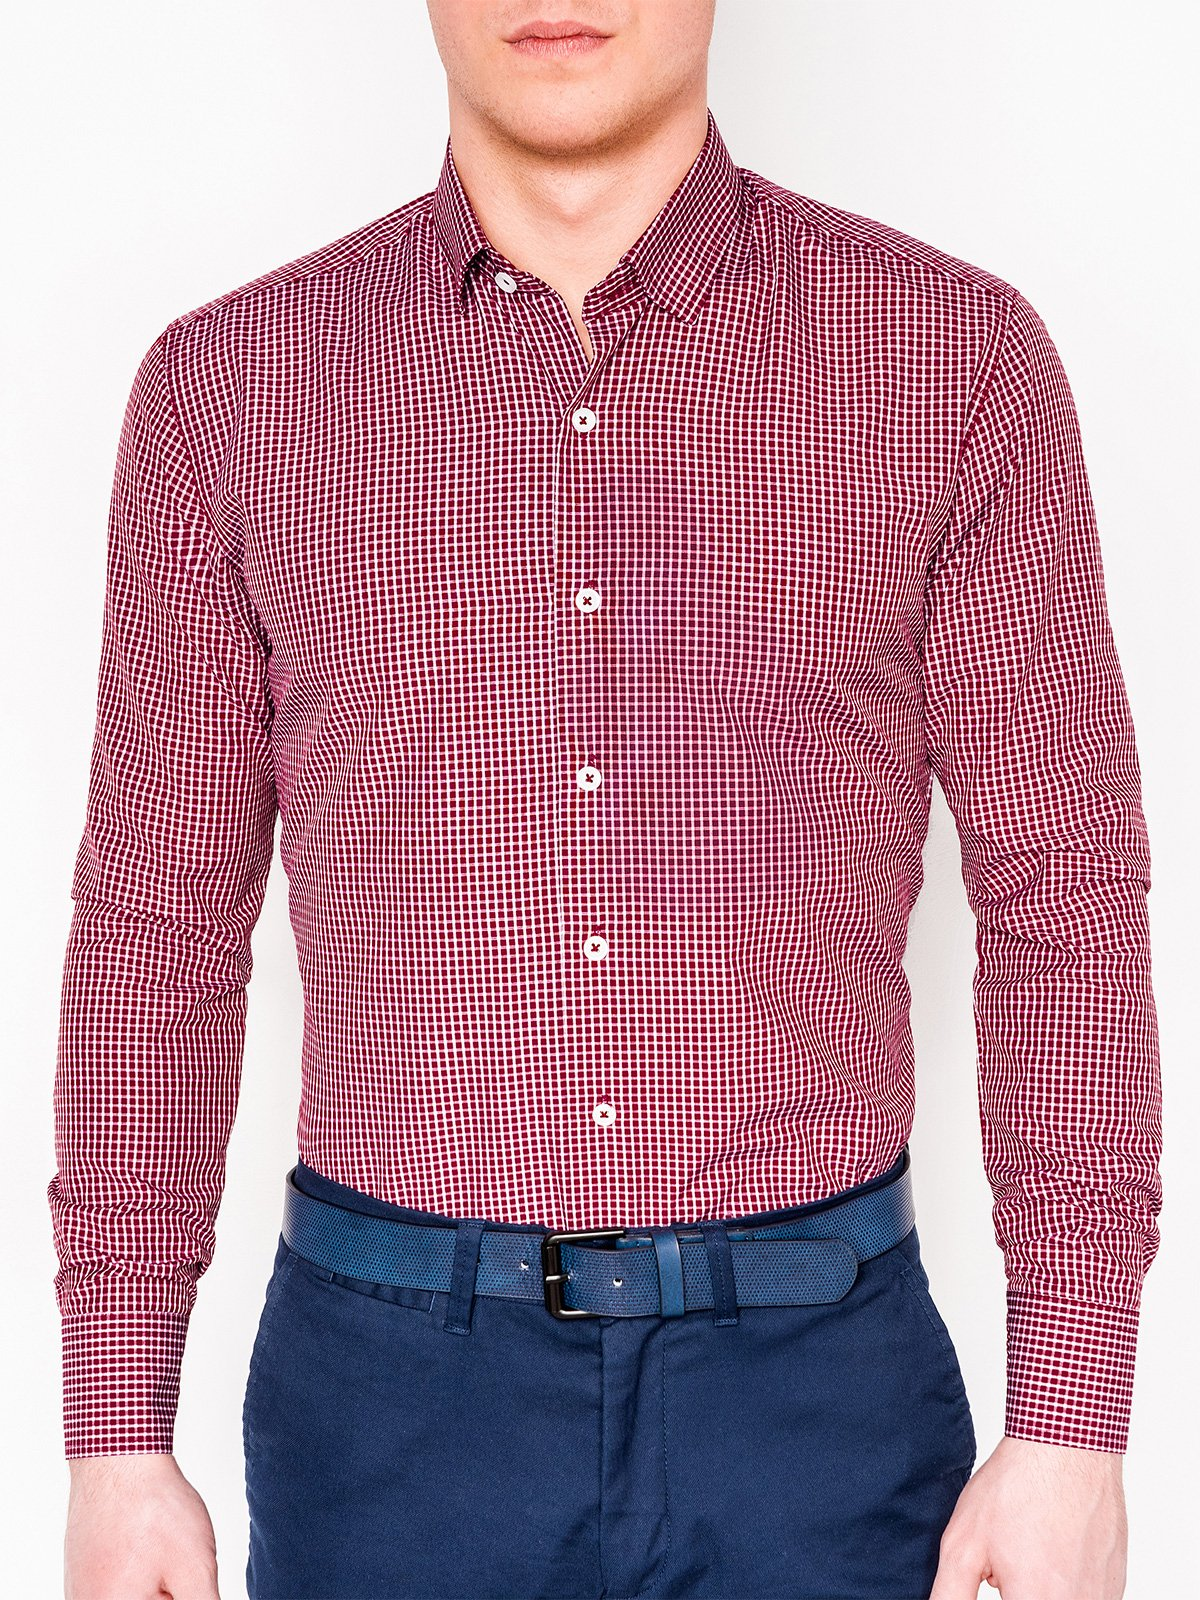 Ombre MEN'S CHECK SHIRT WITH LONG SLEEVES K426